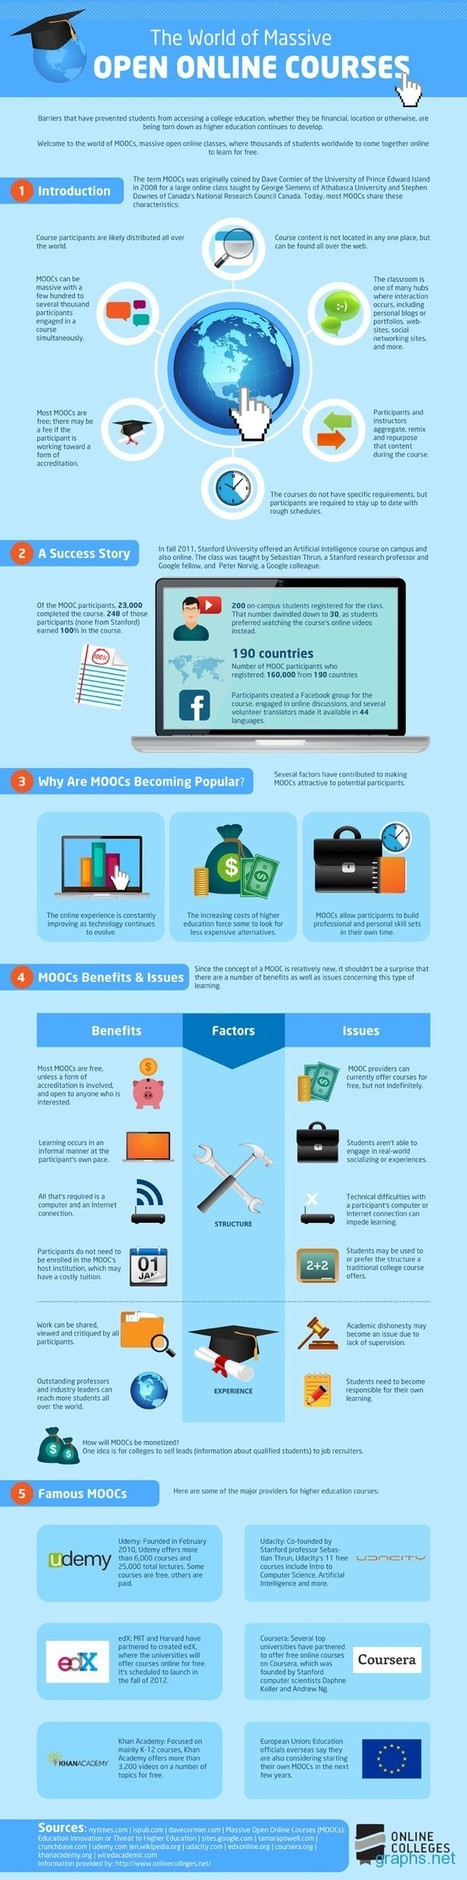 Massive Open Online Courses [Infographic] | Create, Innovate & Evaluate in Higher Education | Scoop.it